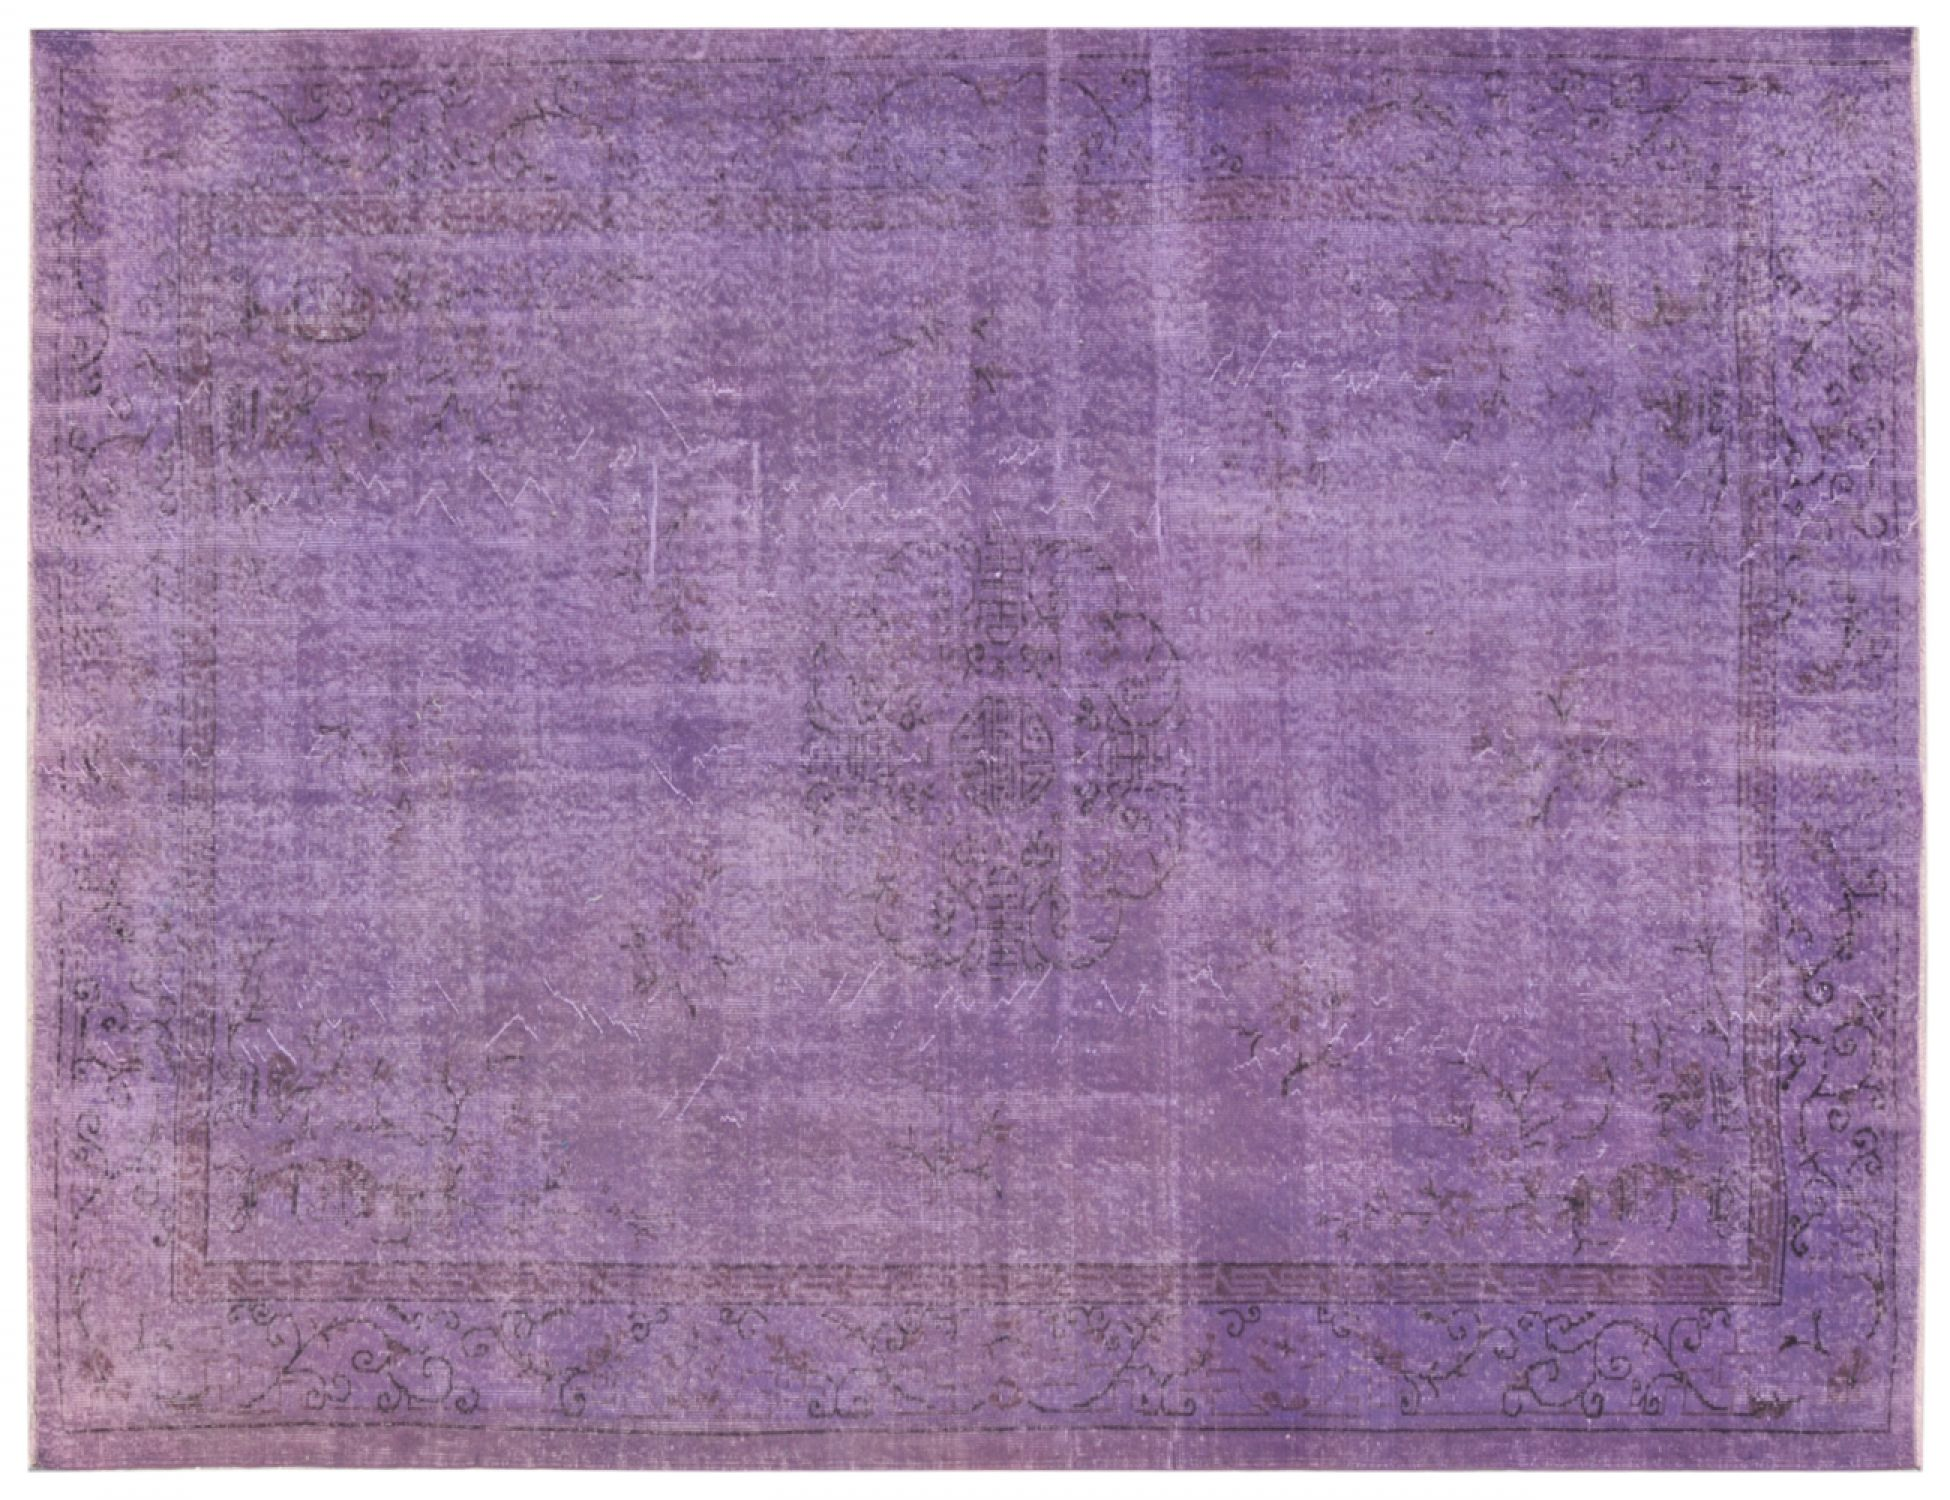 Vintage Carpet  purple <br/>306 x 210 cm